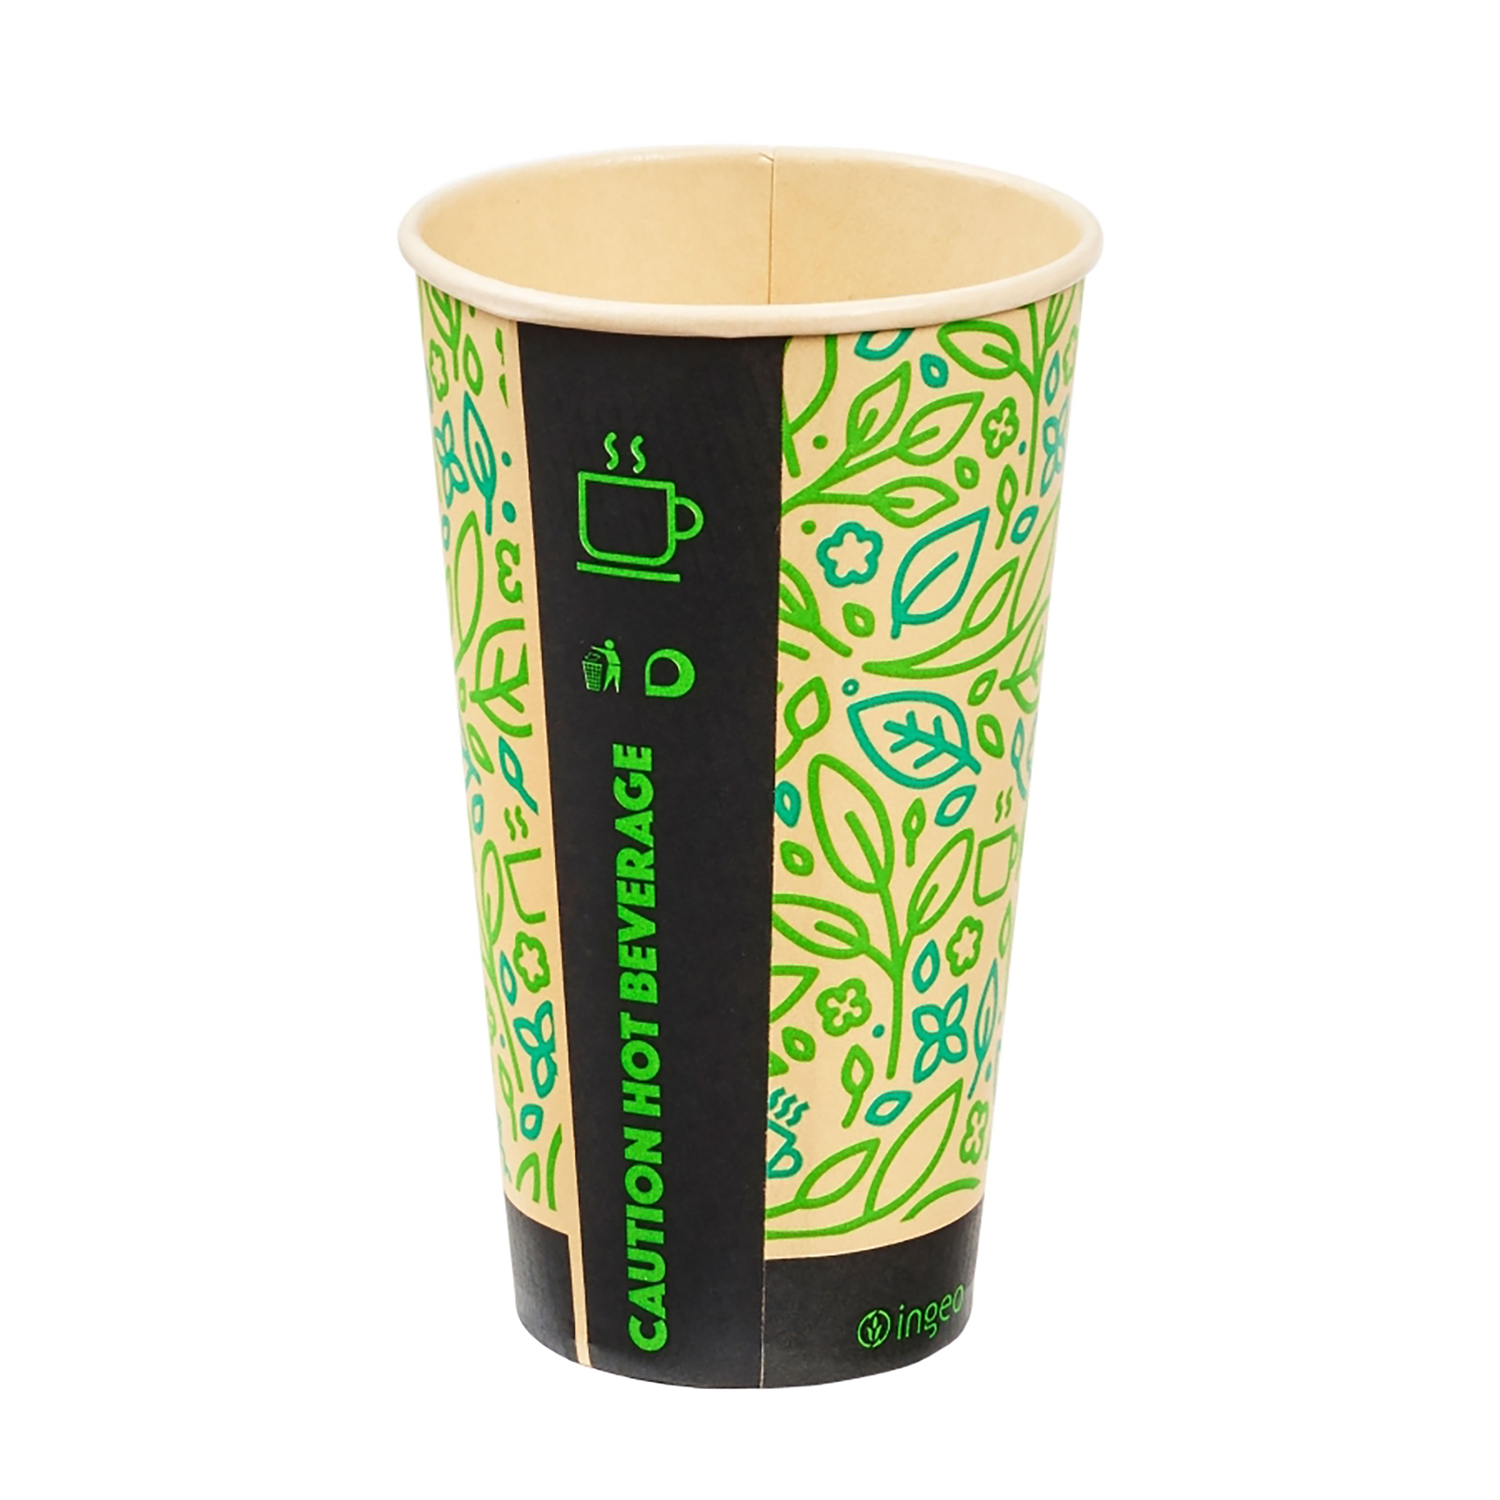 Domestic disposable cups or glasses or lids Ingeo Ultimate Eco Bamboo 16oz Biodegradable Disposable Cups Ref 0511225 Pack 25